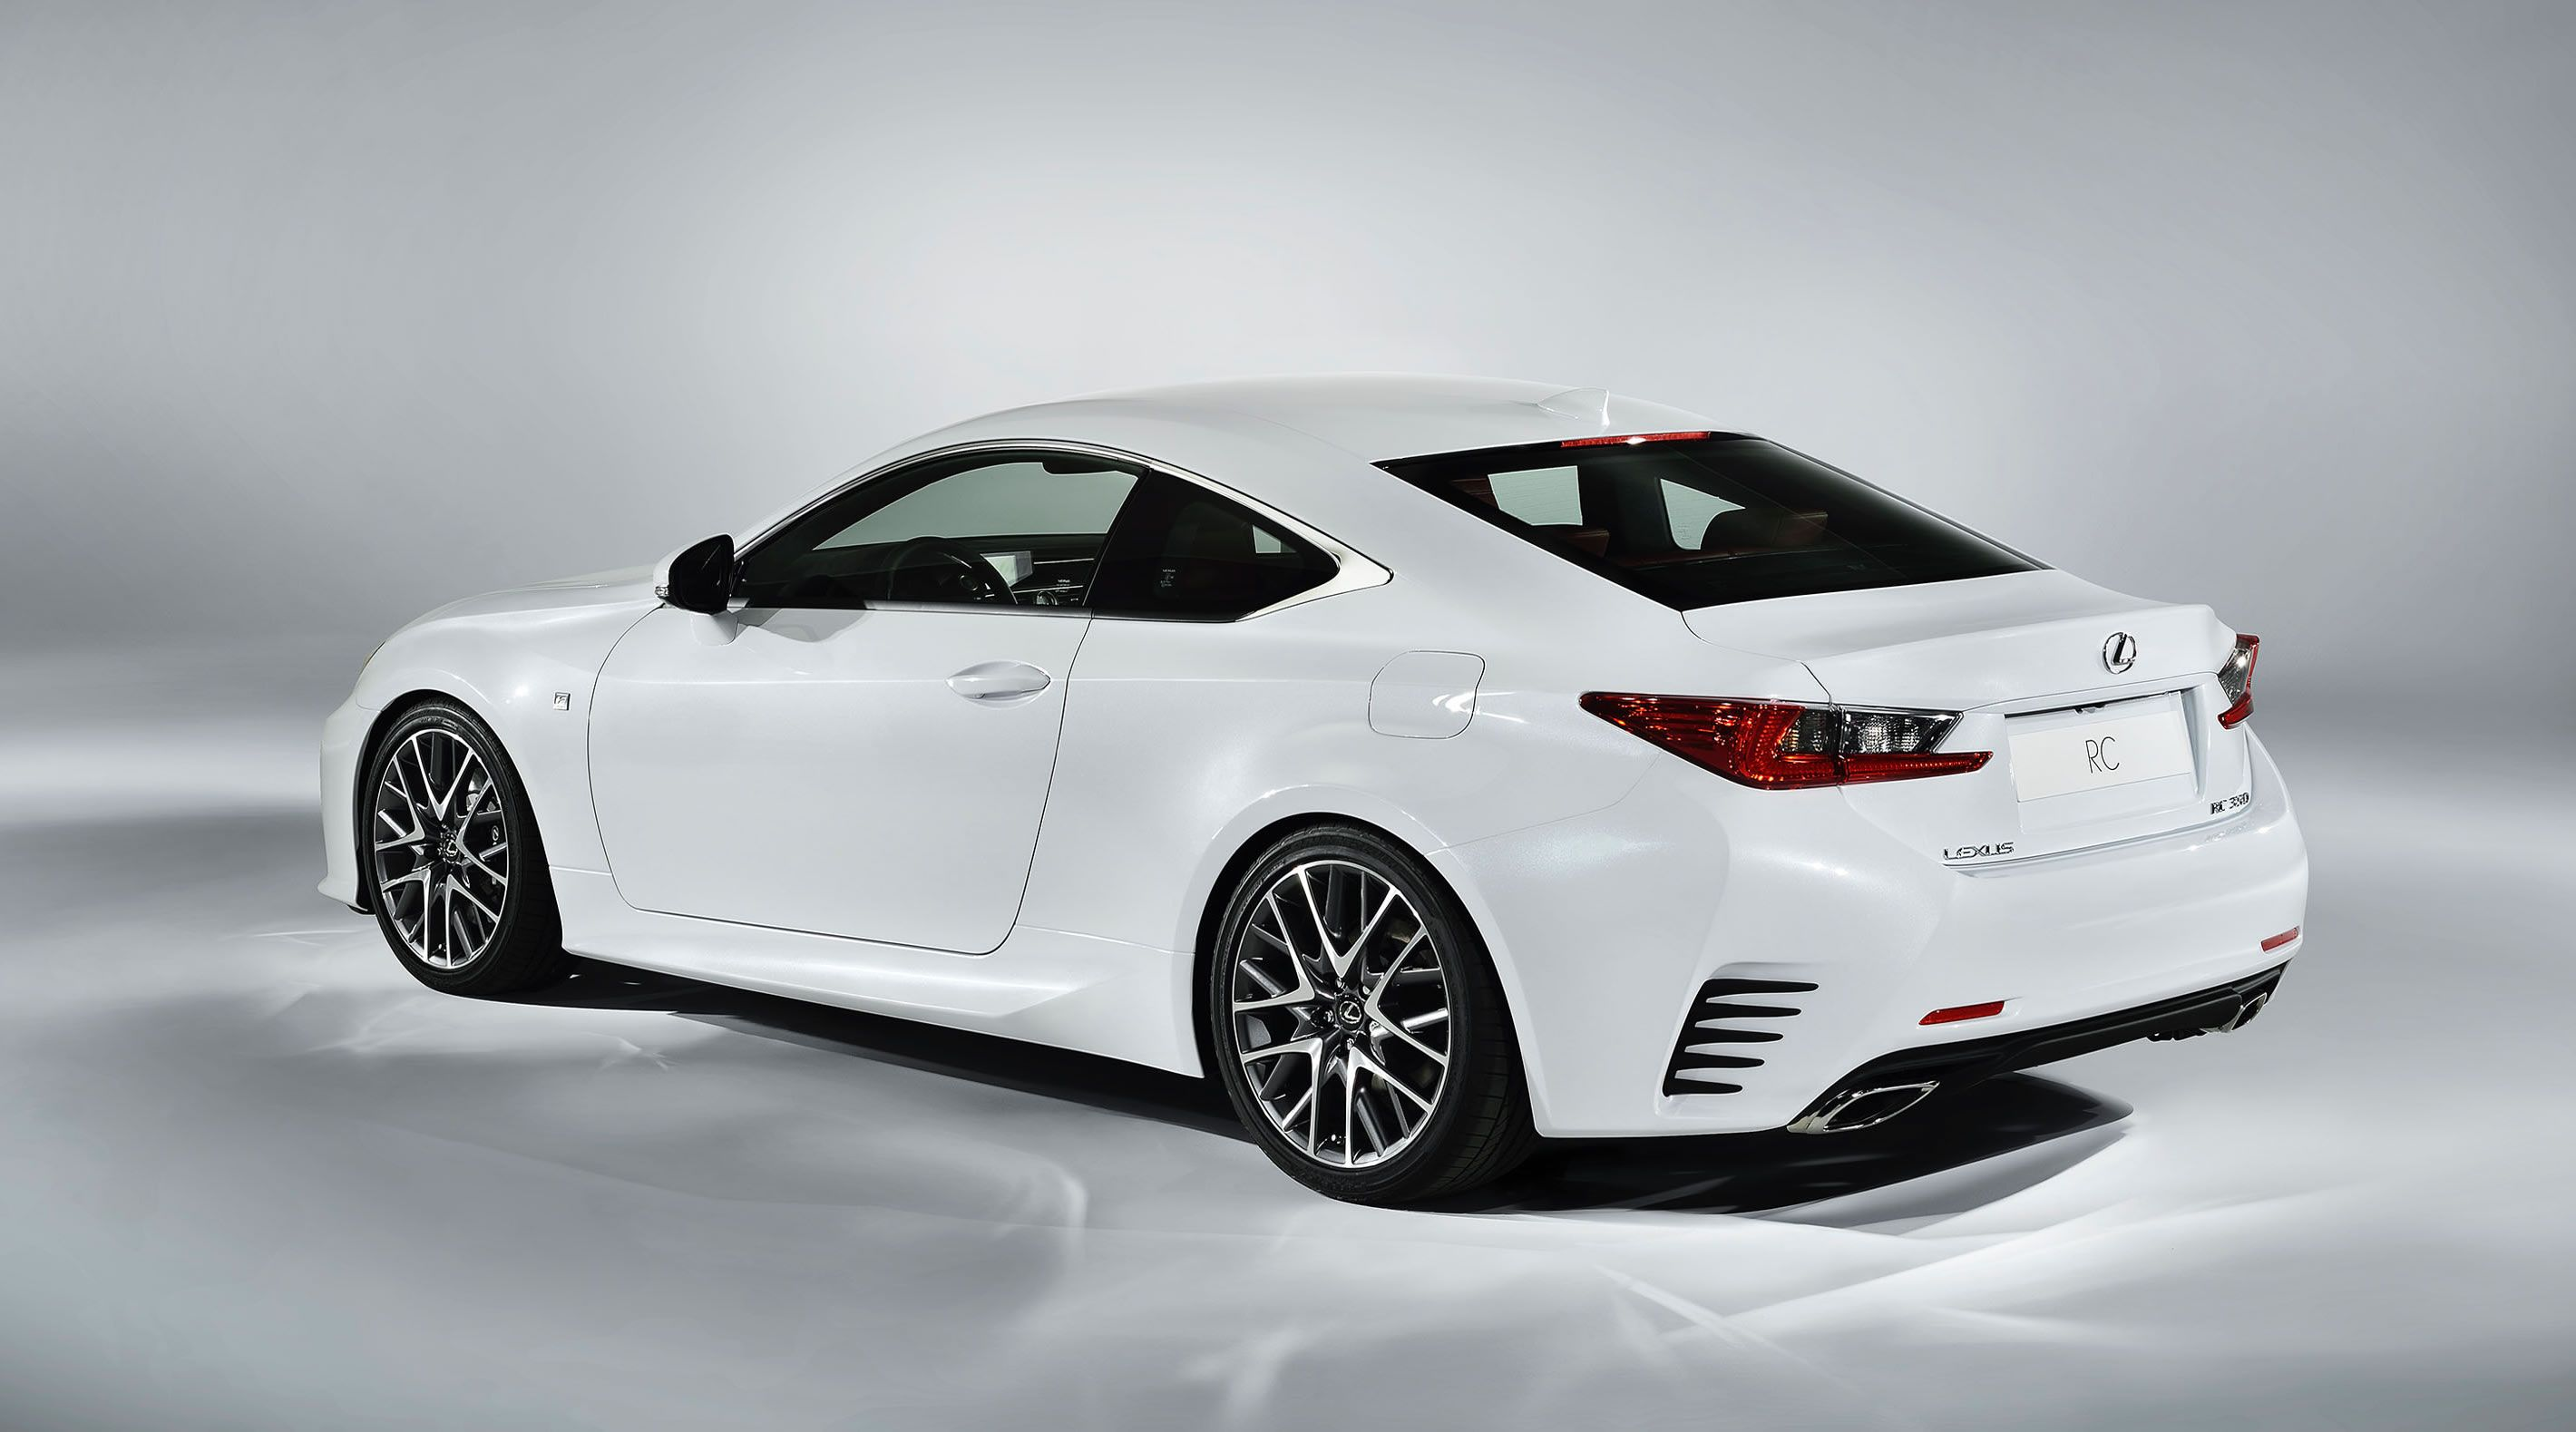 Lexus 2 Door Sports Car Images And Article Update Lexus Sports Car White Lexus Lexus Coupe